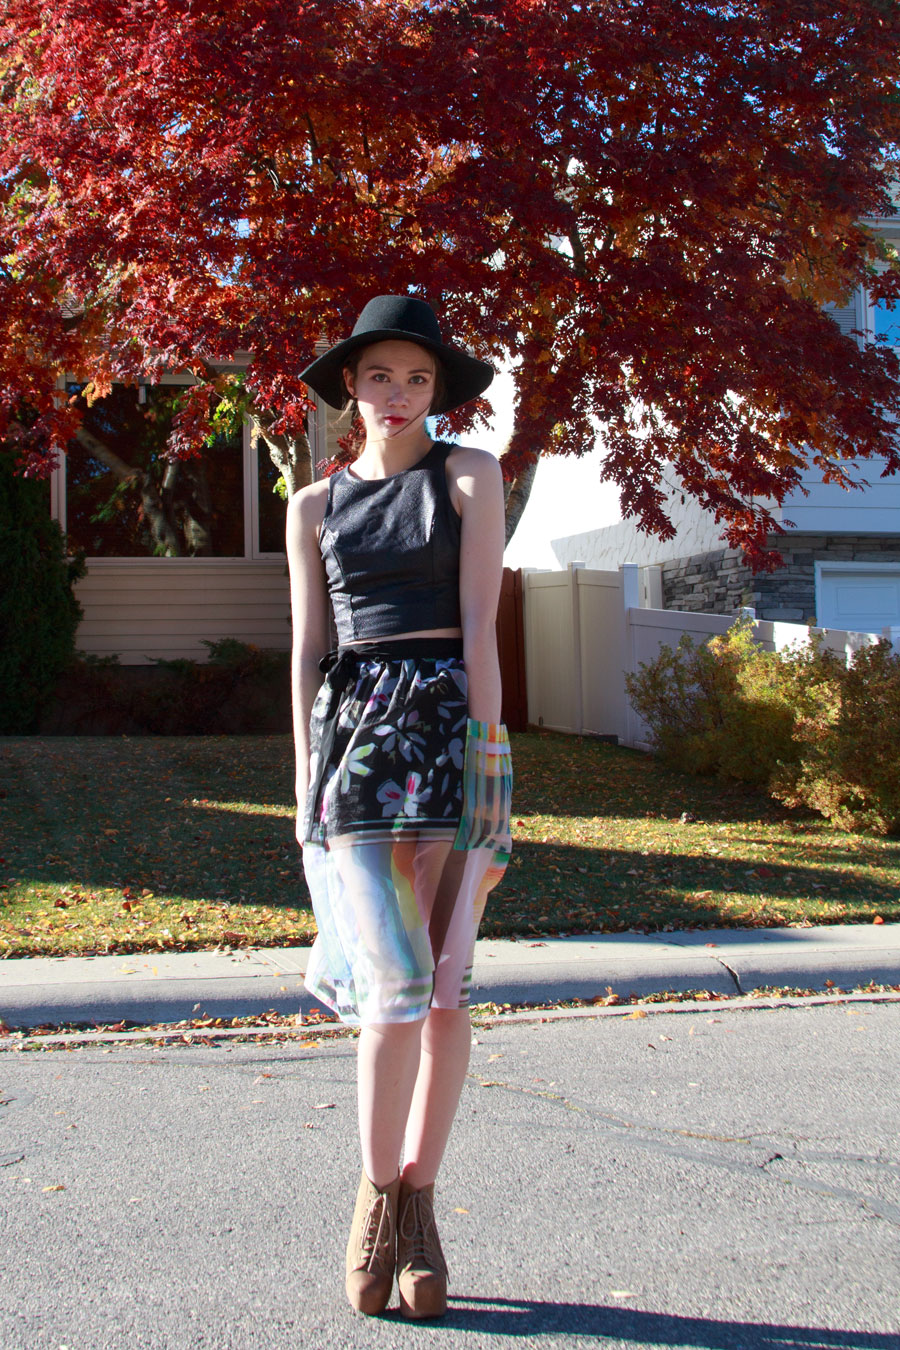 fall fashion, clover canyon, sheer skirt, crop top, felt hat, litas, jeffrey campbell, calgary fashion, anthropologie, bohemian, fashion, style, outfit of the day, personal style